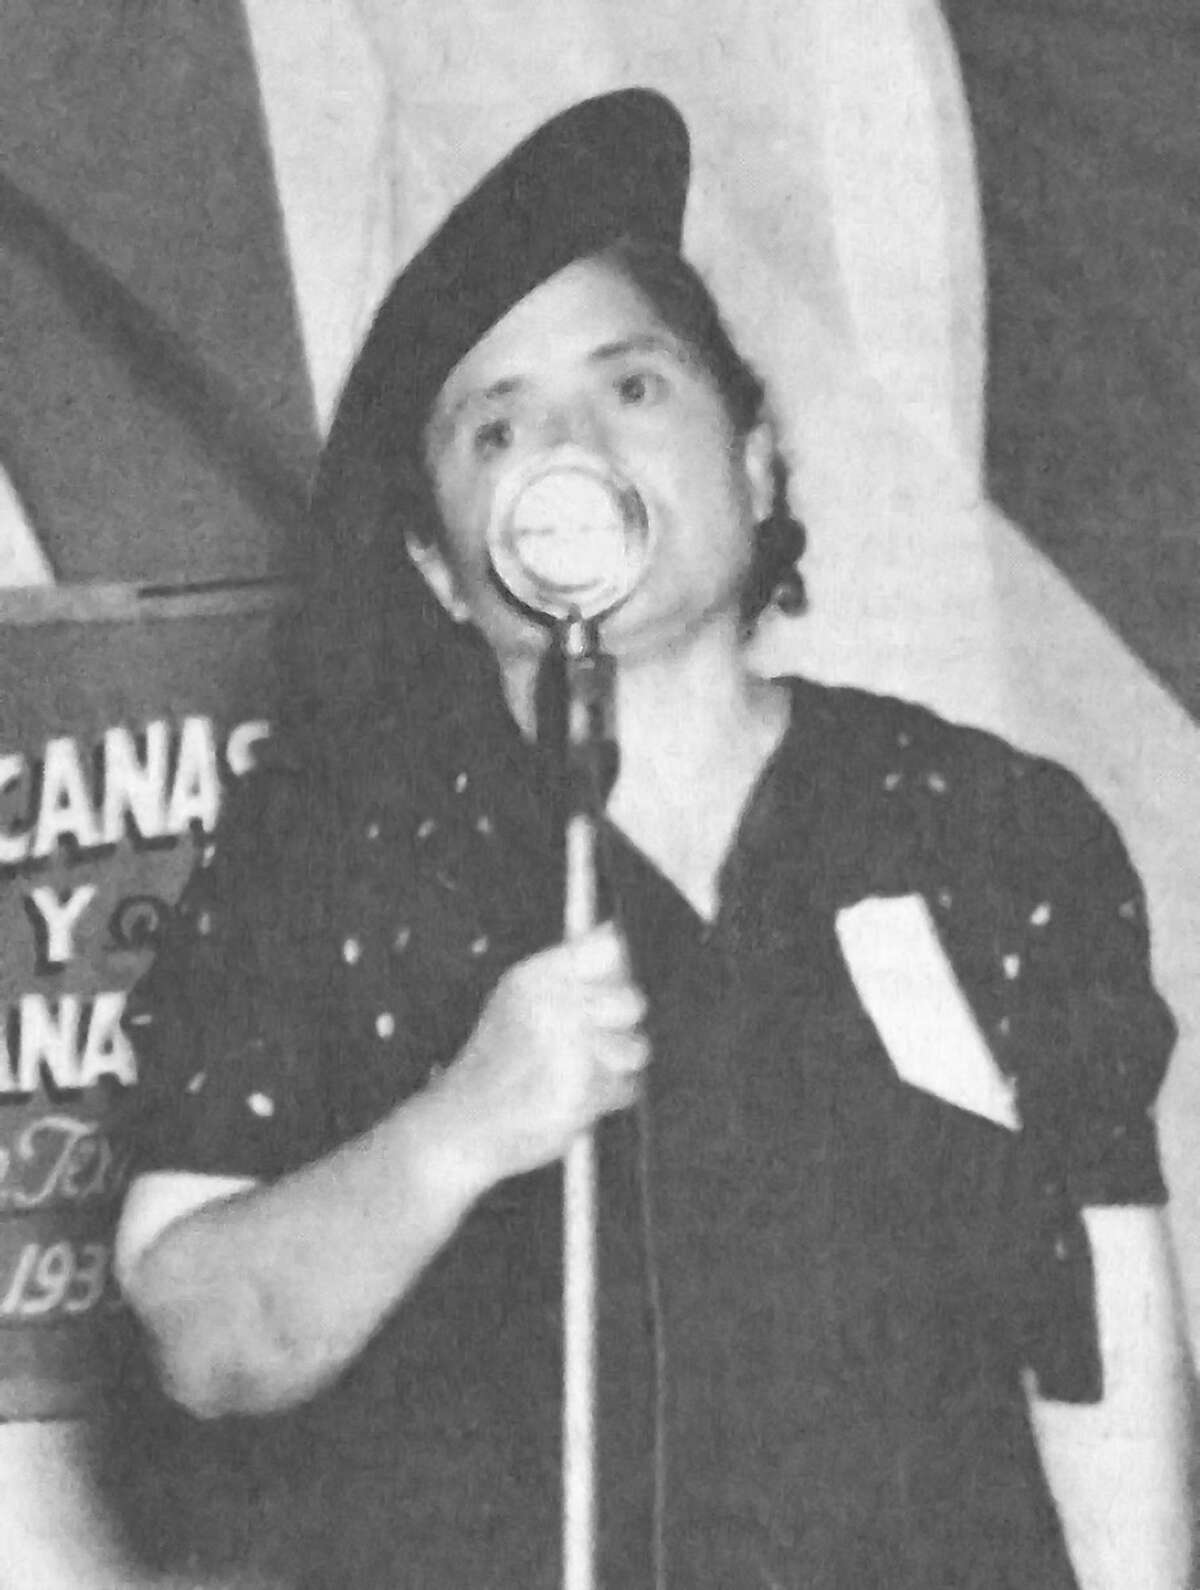 Radio announcer and civil rights activist Mar?'a Rebecca Latigo de Hern‡ndez (1896-1986) is among those featured in the Museo del Westside?•s inaugural online exhibit on Latinas left out of history. The exhibit was planned to commemorate the 100th anniversary of the 19th Amendment.